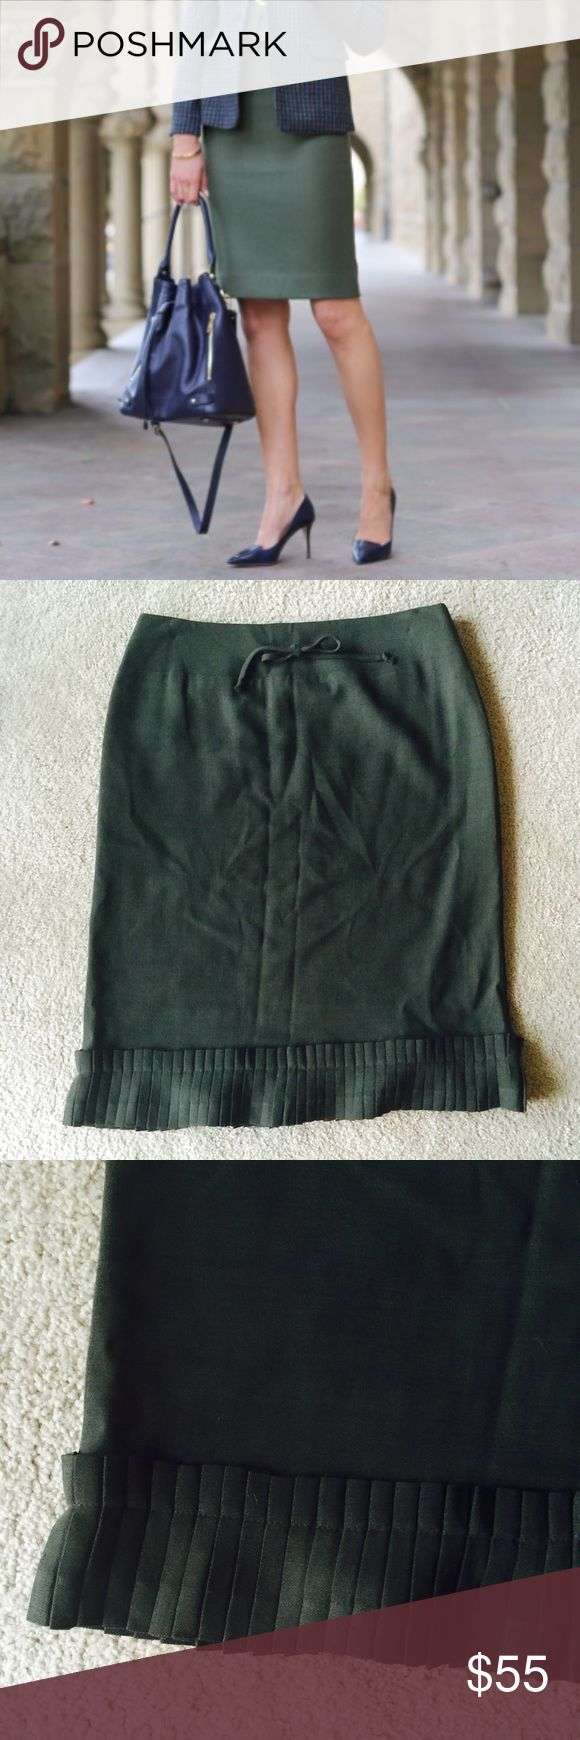 ❗️Neiman Marcus Marc Ray Paris Wool Skirt $198 ❗️LAST CHANCE❗Neiman Marcus ️Marc Ray Paris & New York Dark Olive 100% Wool Skirt. Retails $198. In like new condition. Should fall to knees or just below. Tie at front & cute pleated texture on bottom. Size 10. Im cleaning out all items--everything must go this week to make room for new items! Enjoy 20% off bundles! I also consider all reasonable offers--feel free to make an offer & its yours! Shipping today! ;-) Neiman Marcus Skirts Midi